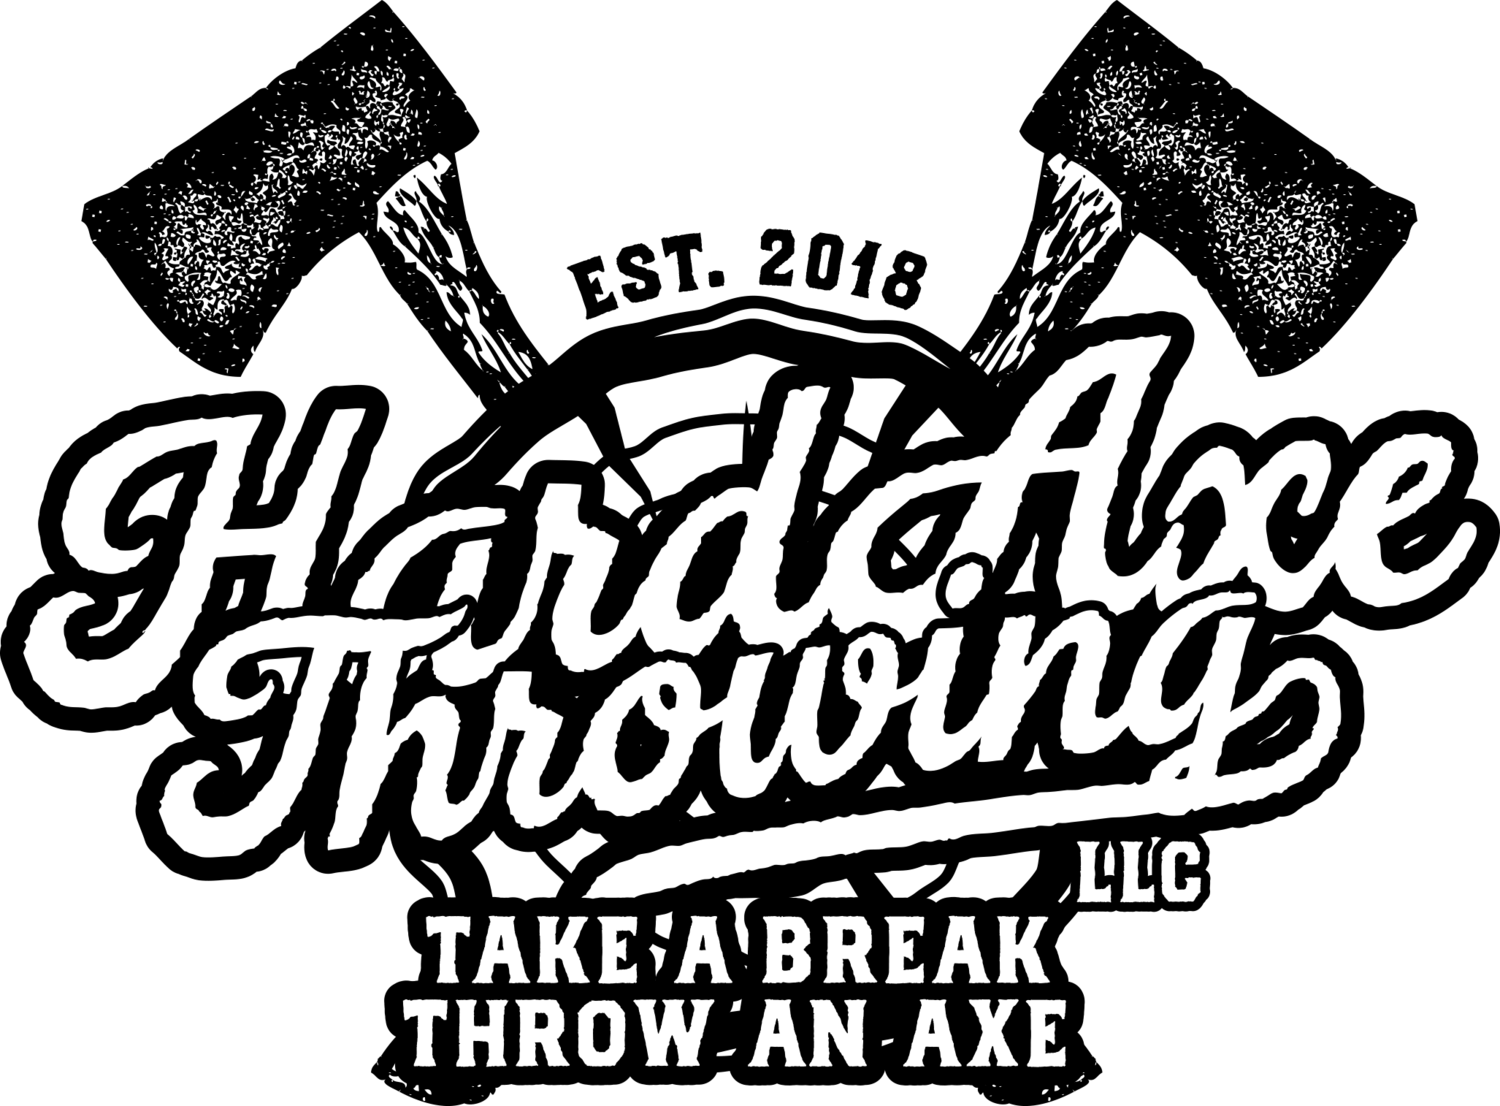 HardAxe Throwing